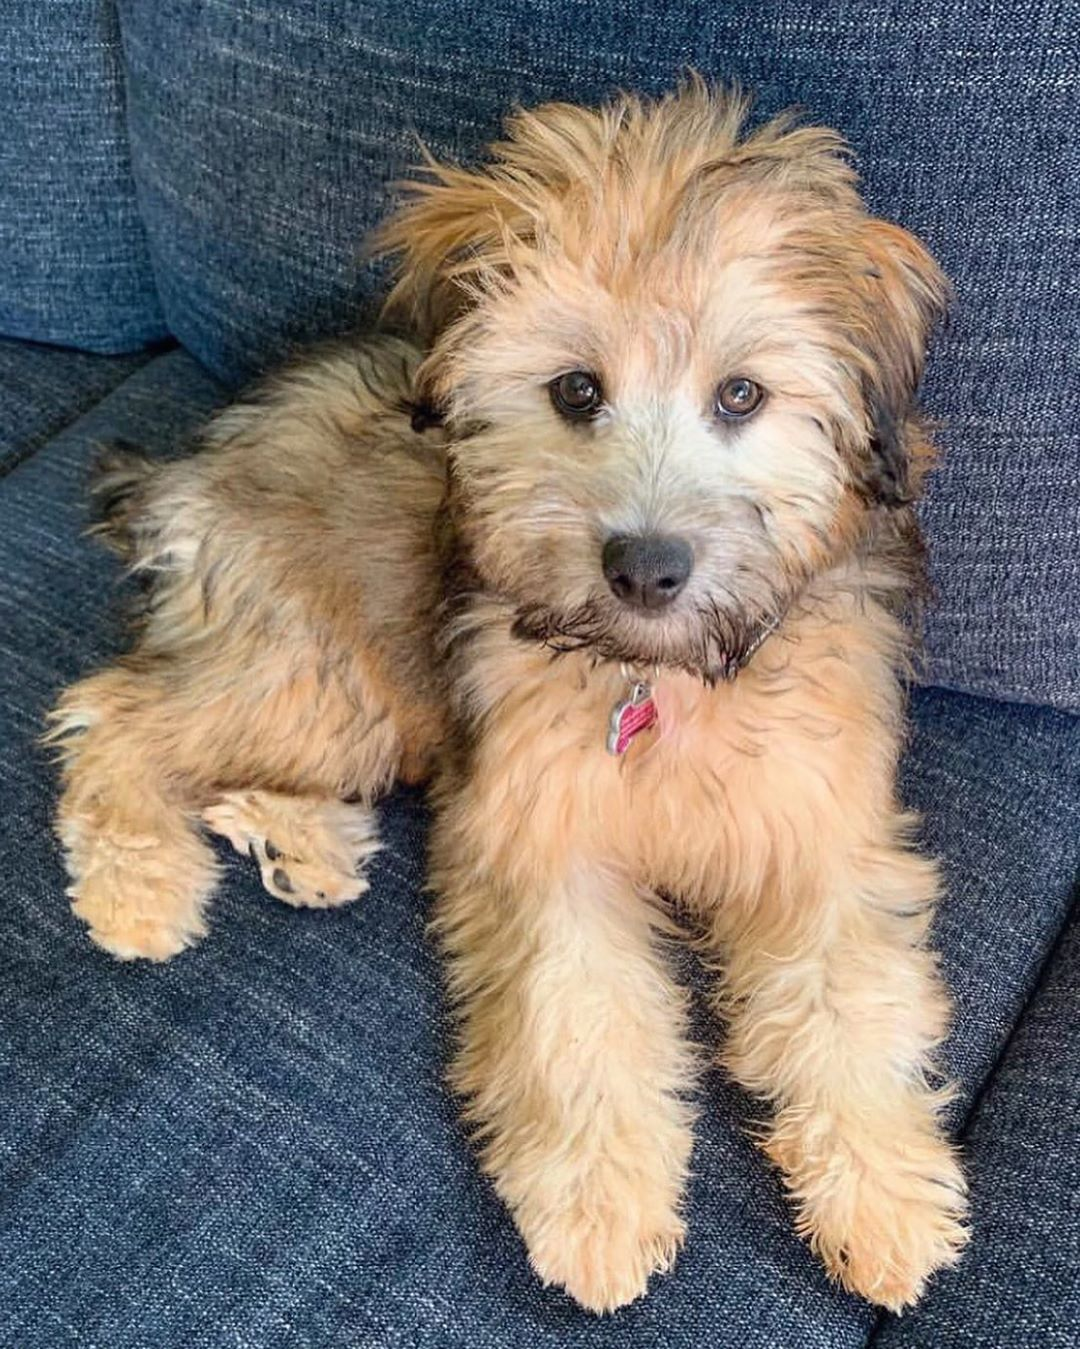 Pin By Marissa Young On Dogoz Whoodle Dog Whoodle Puppy Cute